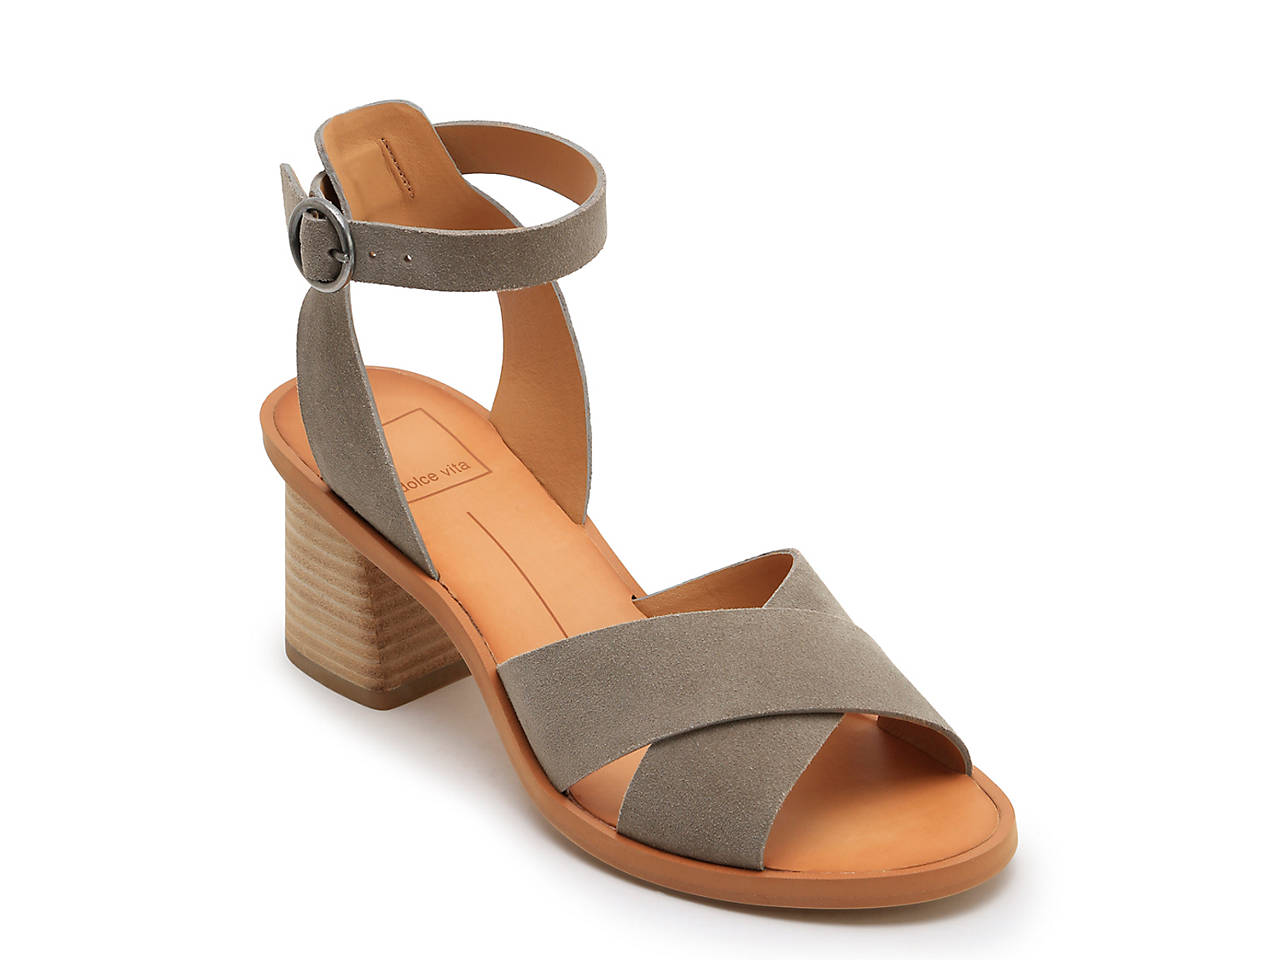 6ce42fe93 Dolce Vita Rio Sandal Women s Shoes